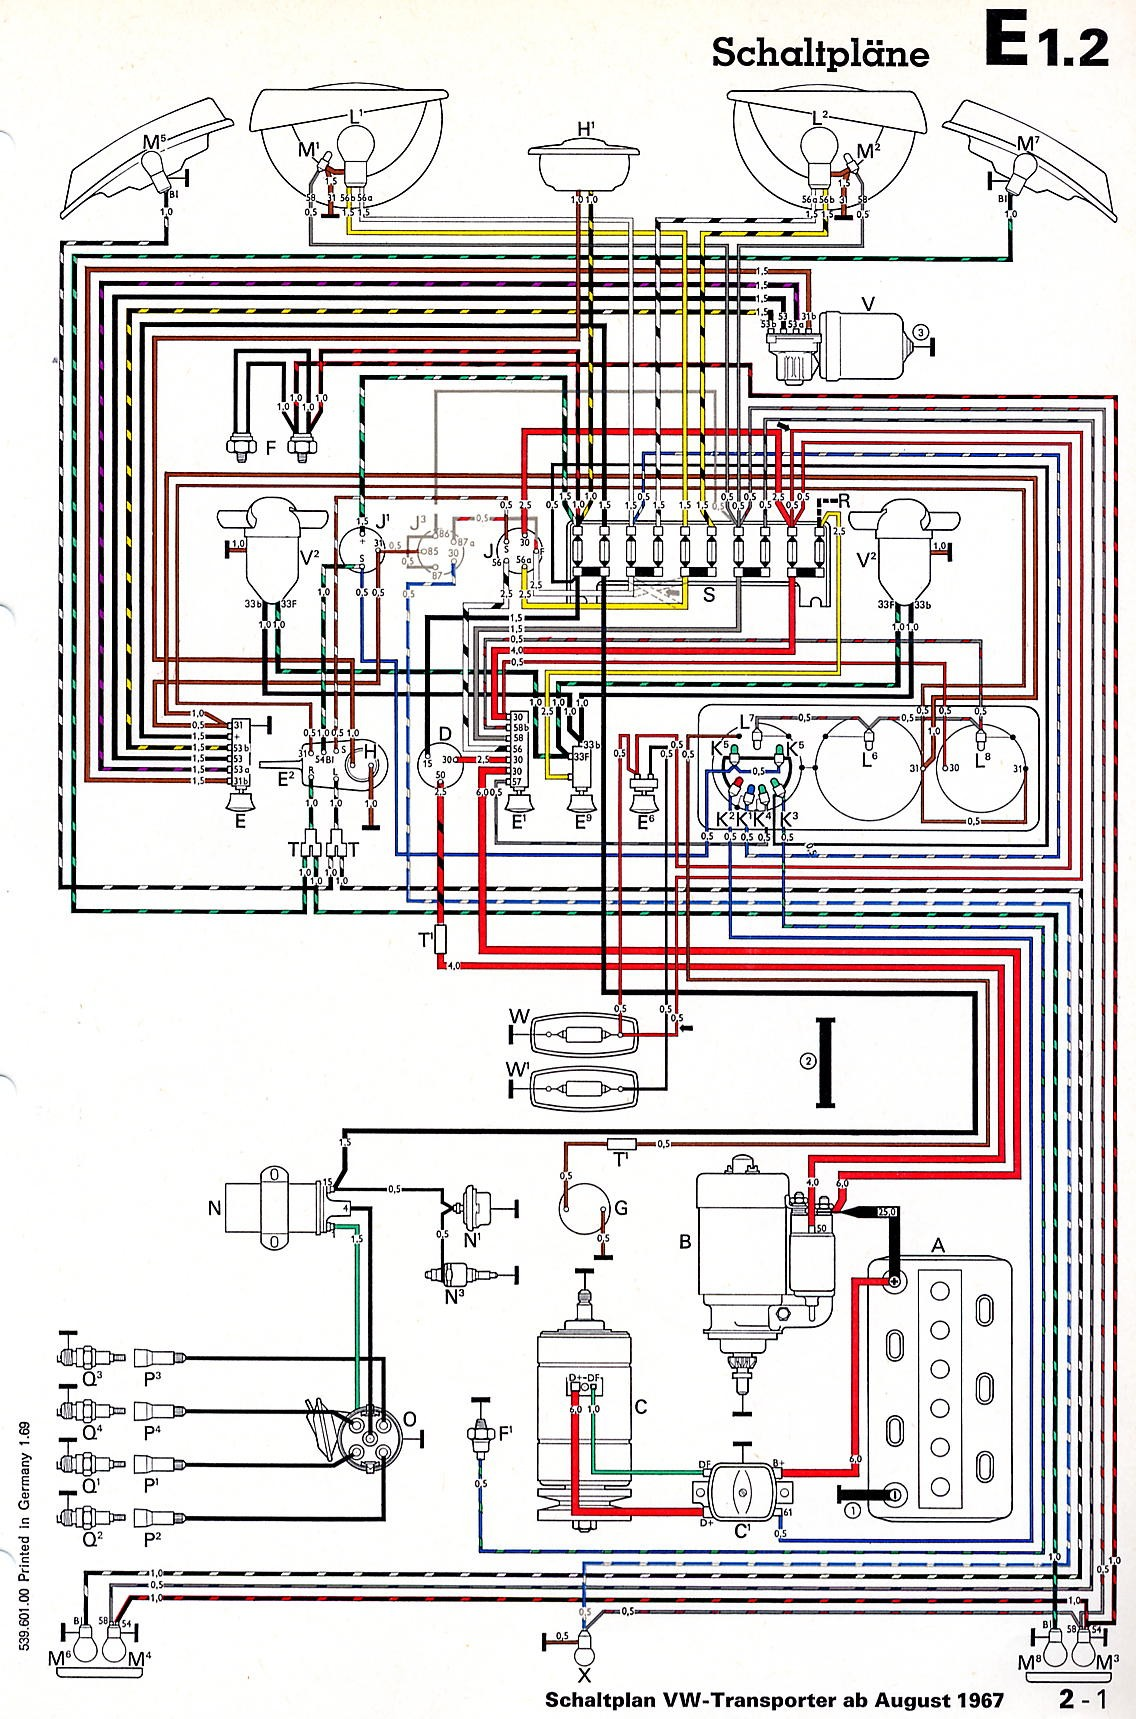 Vw Engine Parts Diagram 2000 Volkswagen Pat Fuse Box Diagram Also 1961 Cadillac for Sale Of Vw Engine Parts Diagram